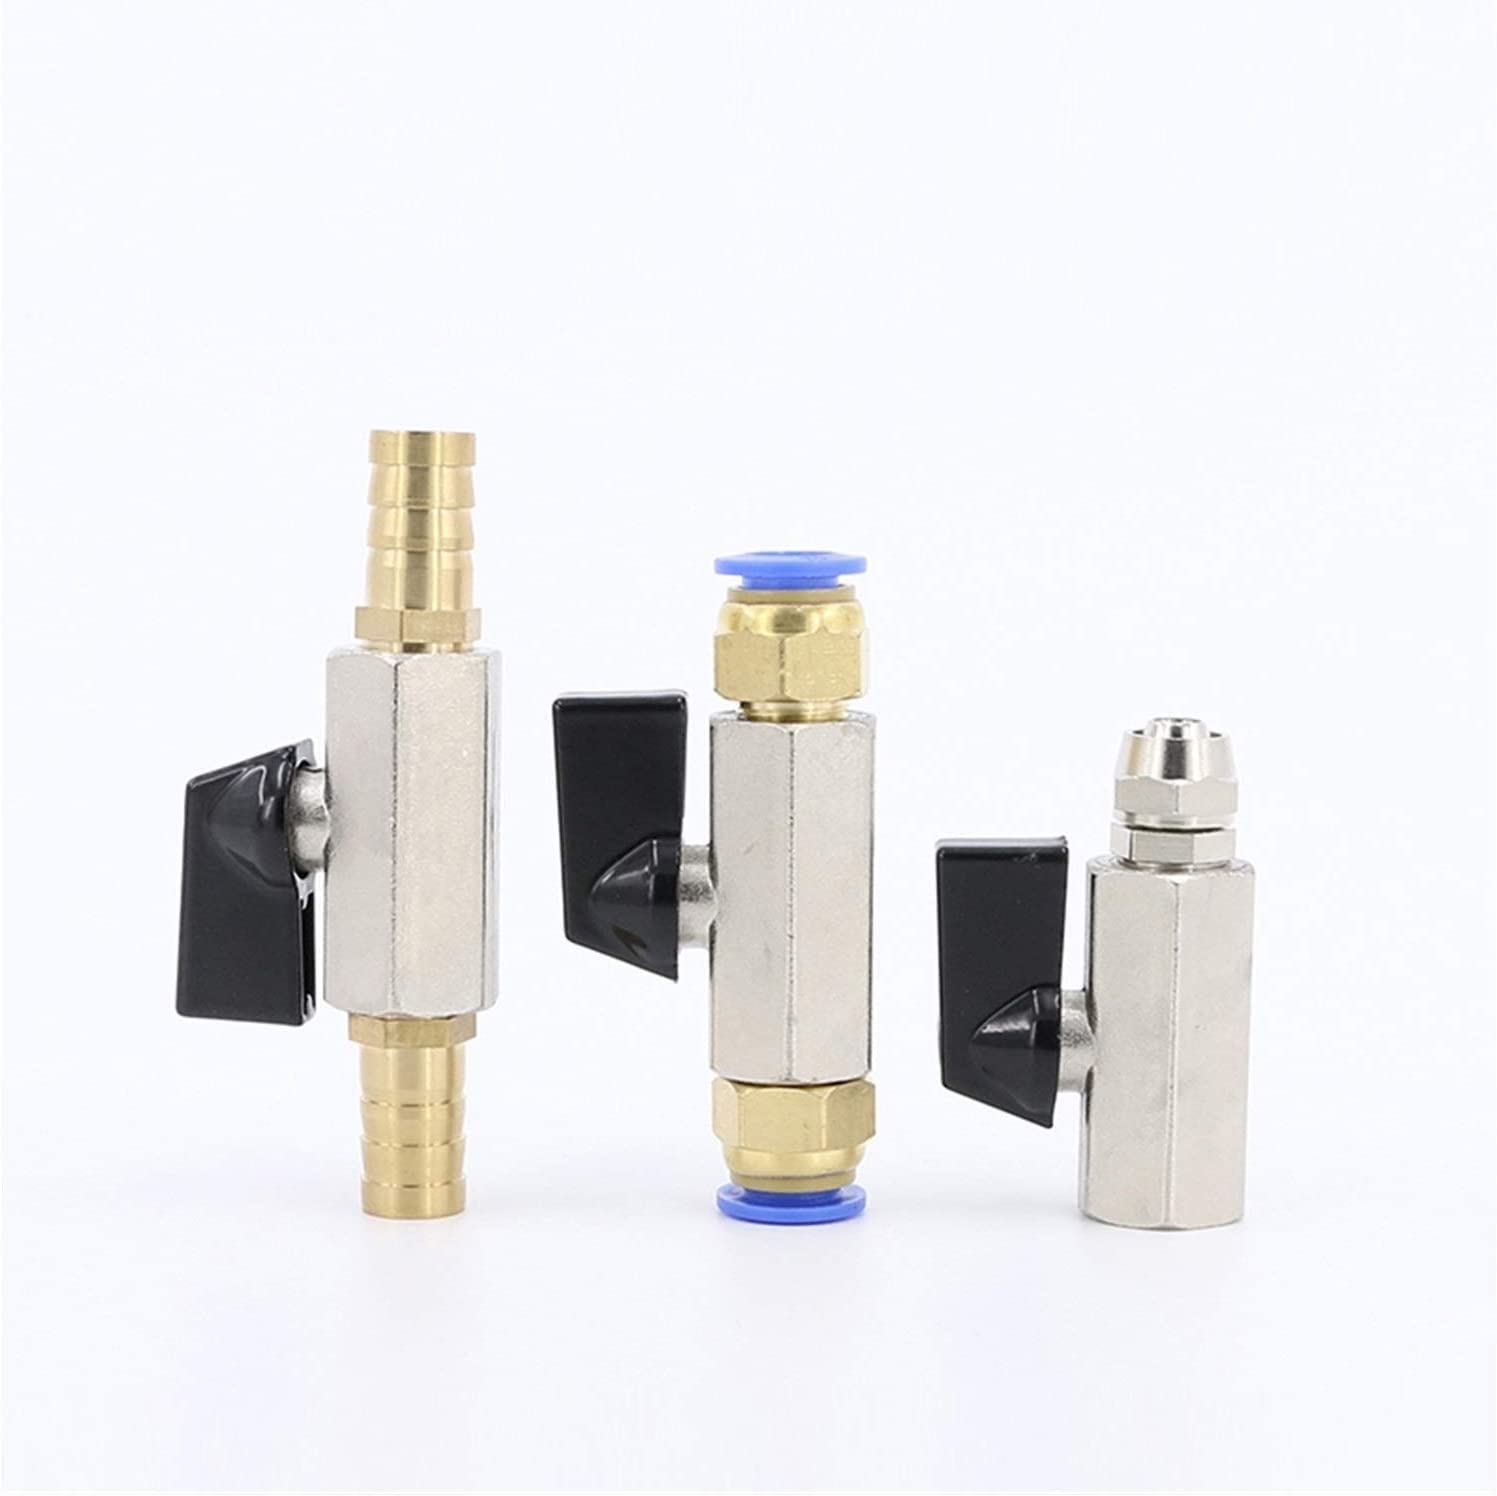 Mini Pneumatic Ball Valve Air Pump Valve Switch Deflation Water Valve Inner and Outer Wire Quick Connector Pagoda Color : A, Size : 12mm Joint